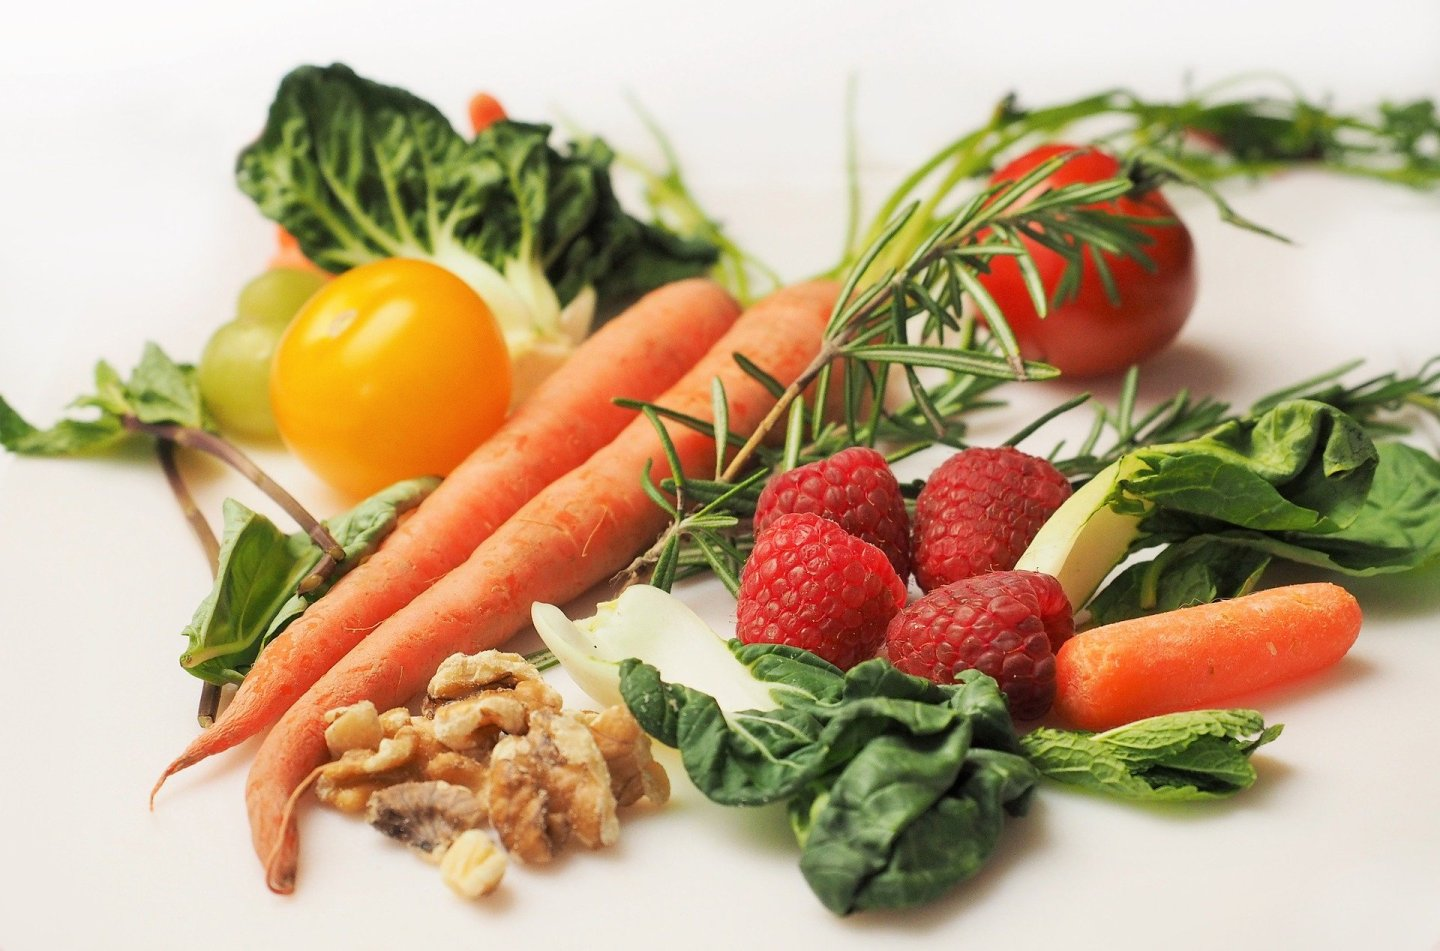 4 Reasons To Go Vegan For A Healthier Lifestyle